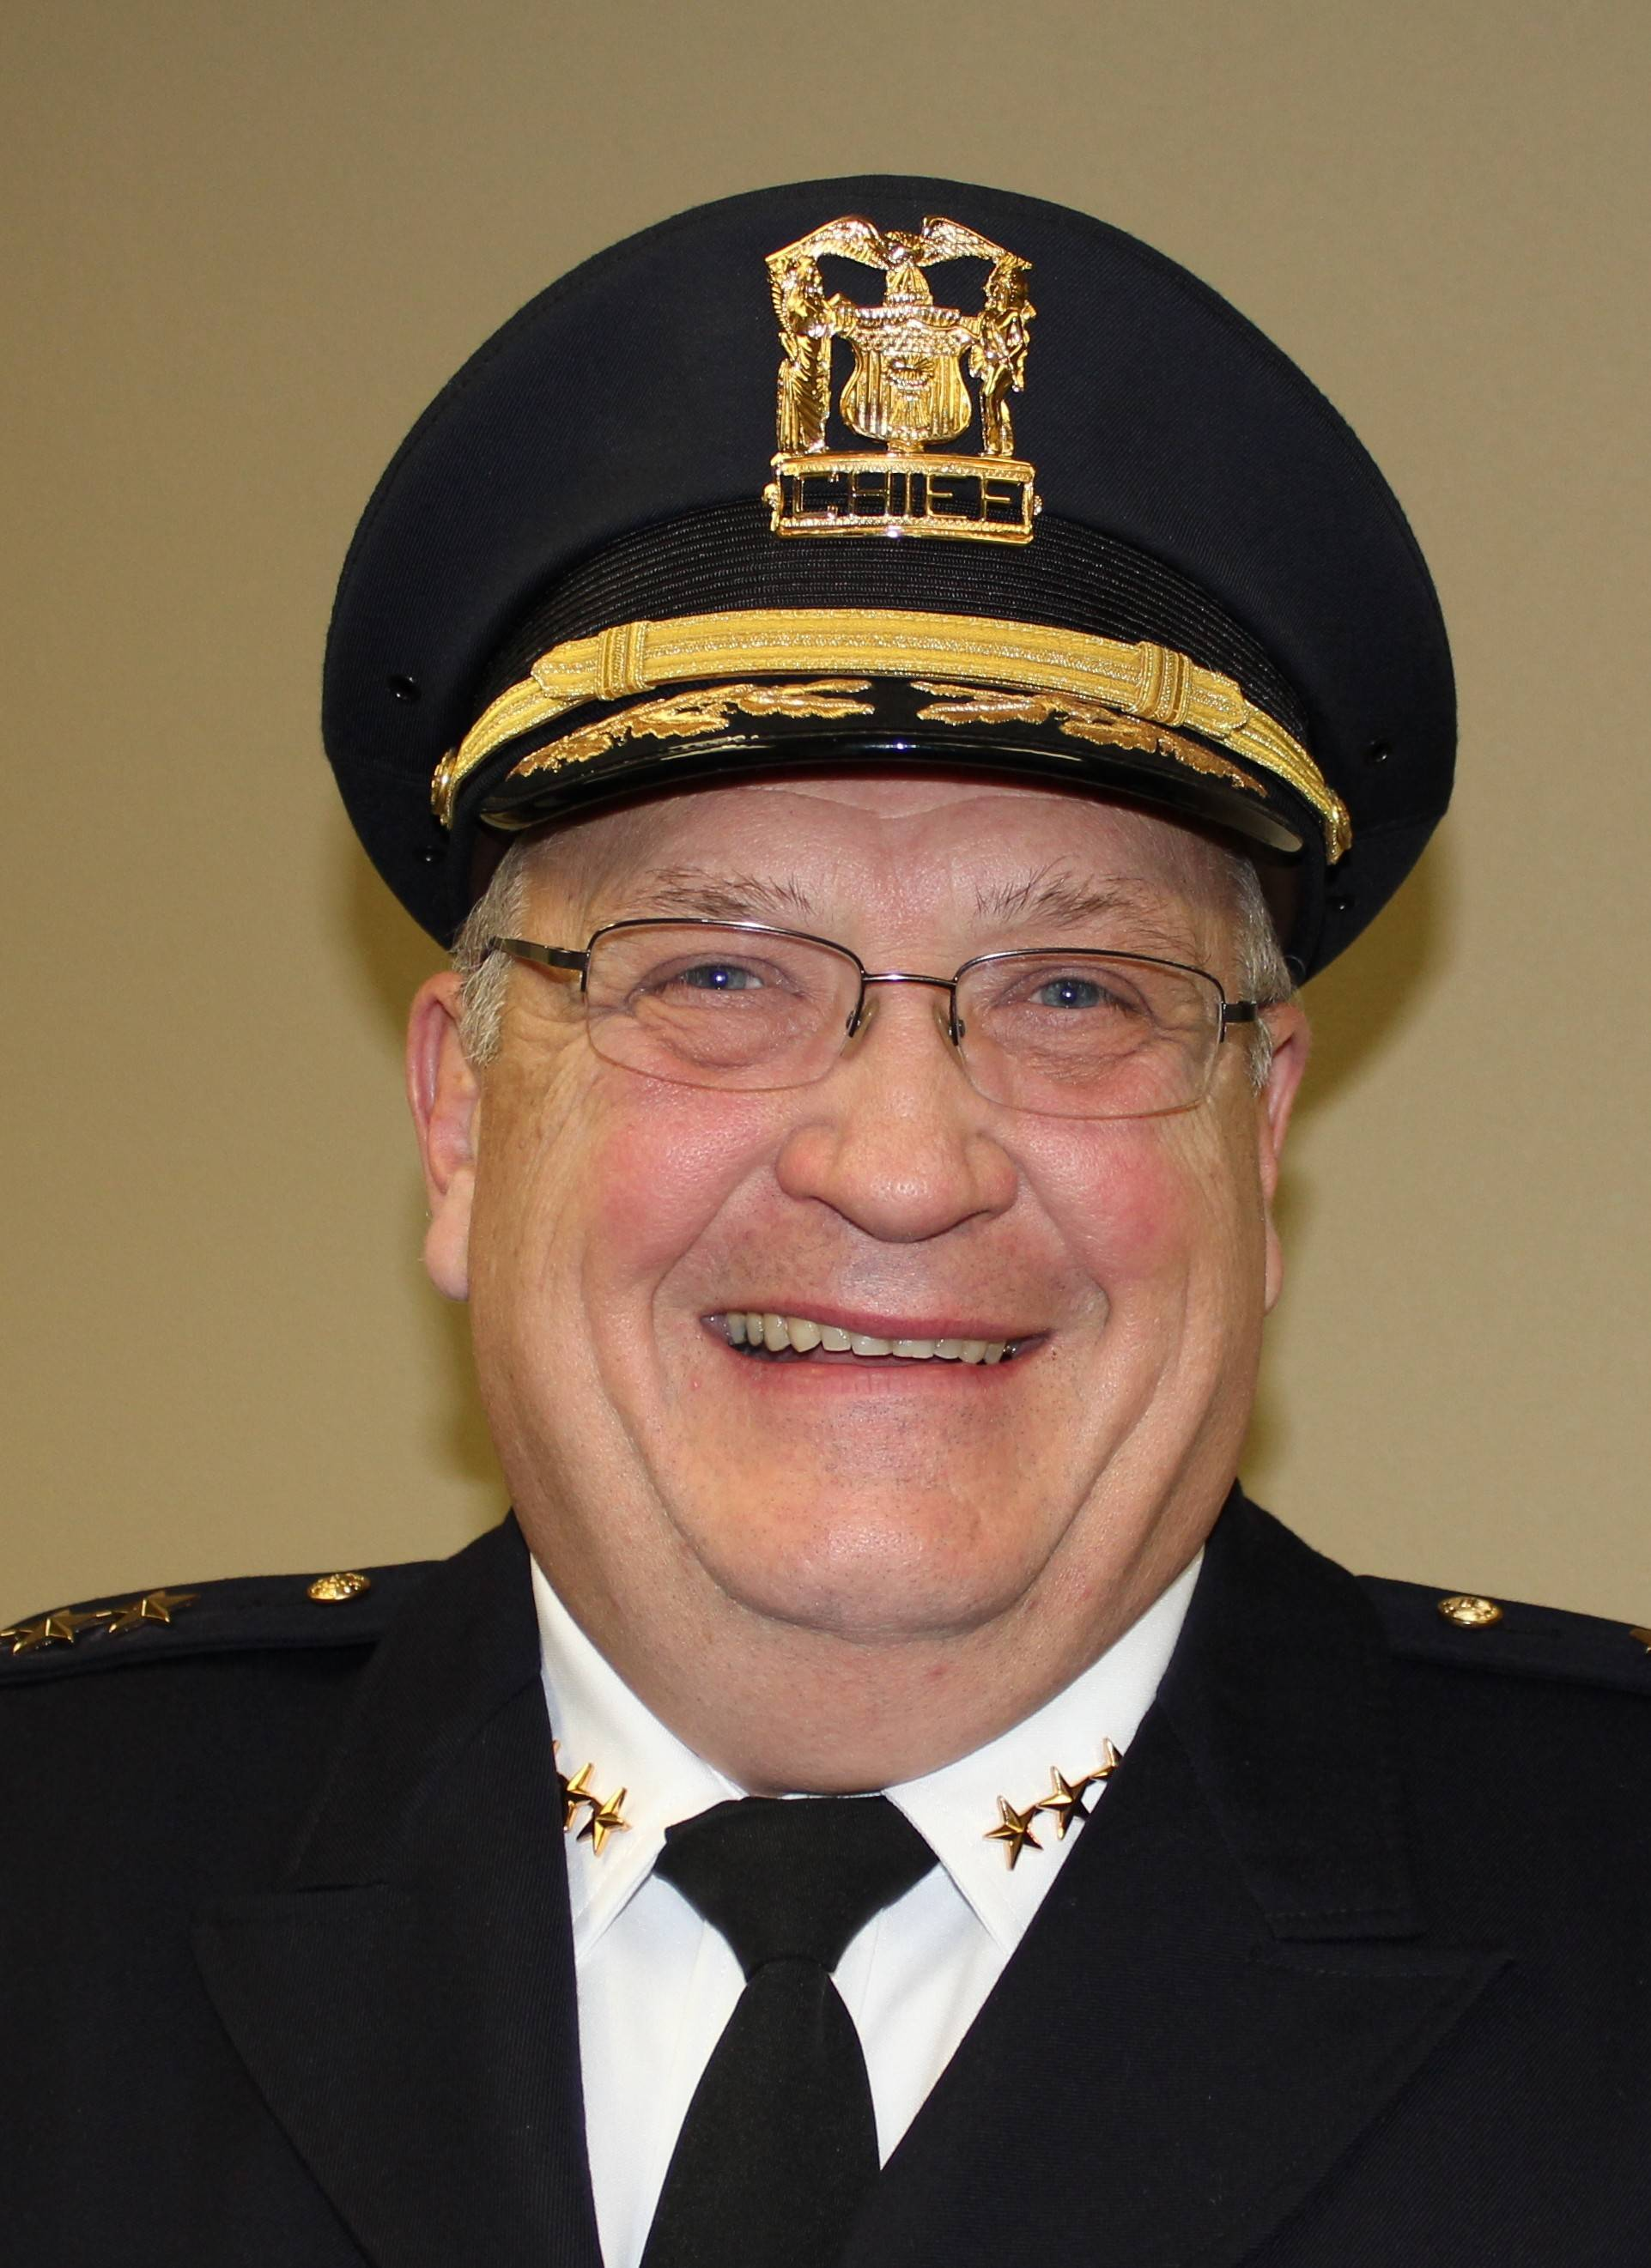 Des Plaines Police Chief Bill Kushner